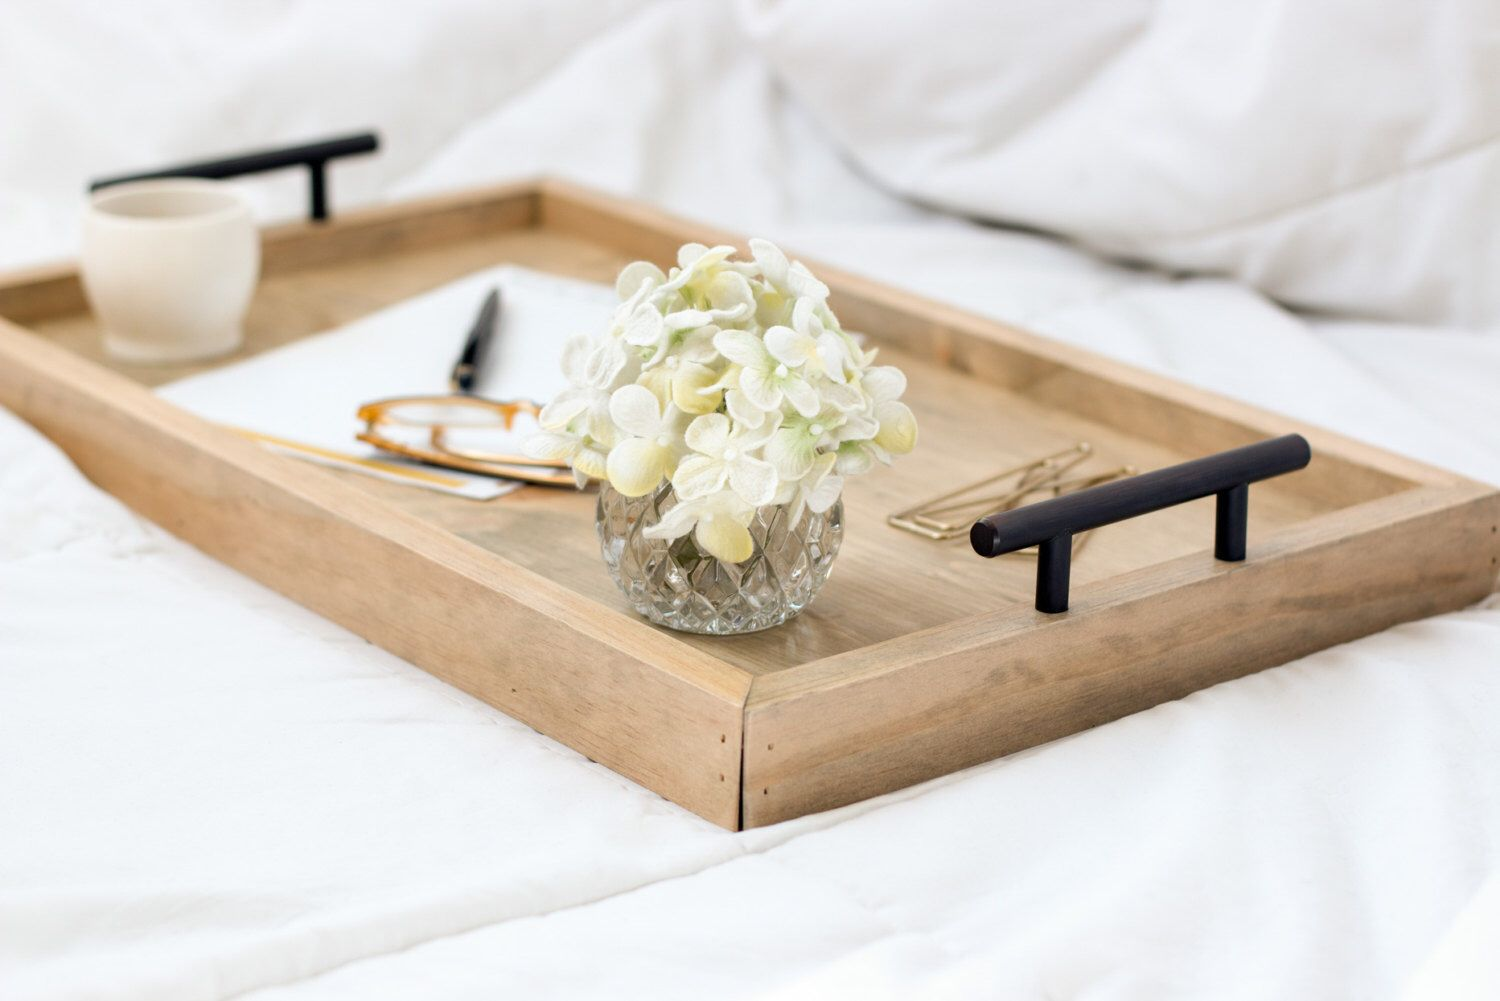 Breakfast Trays For Bed Amusing Serving Tray Wood Serving Tray Breakfast Tray Housewarming Gift Design Ideas